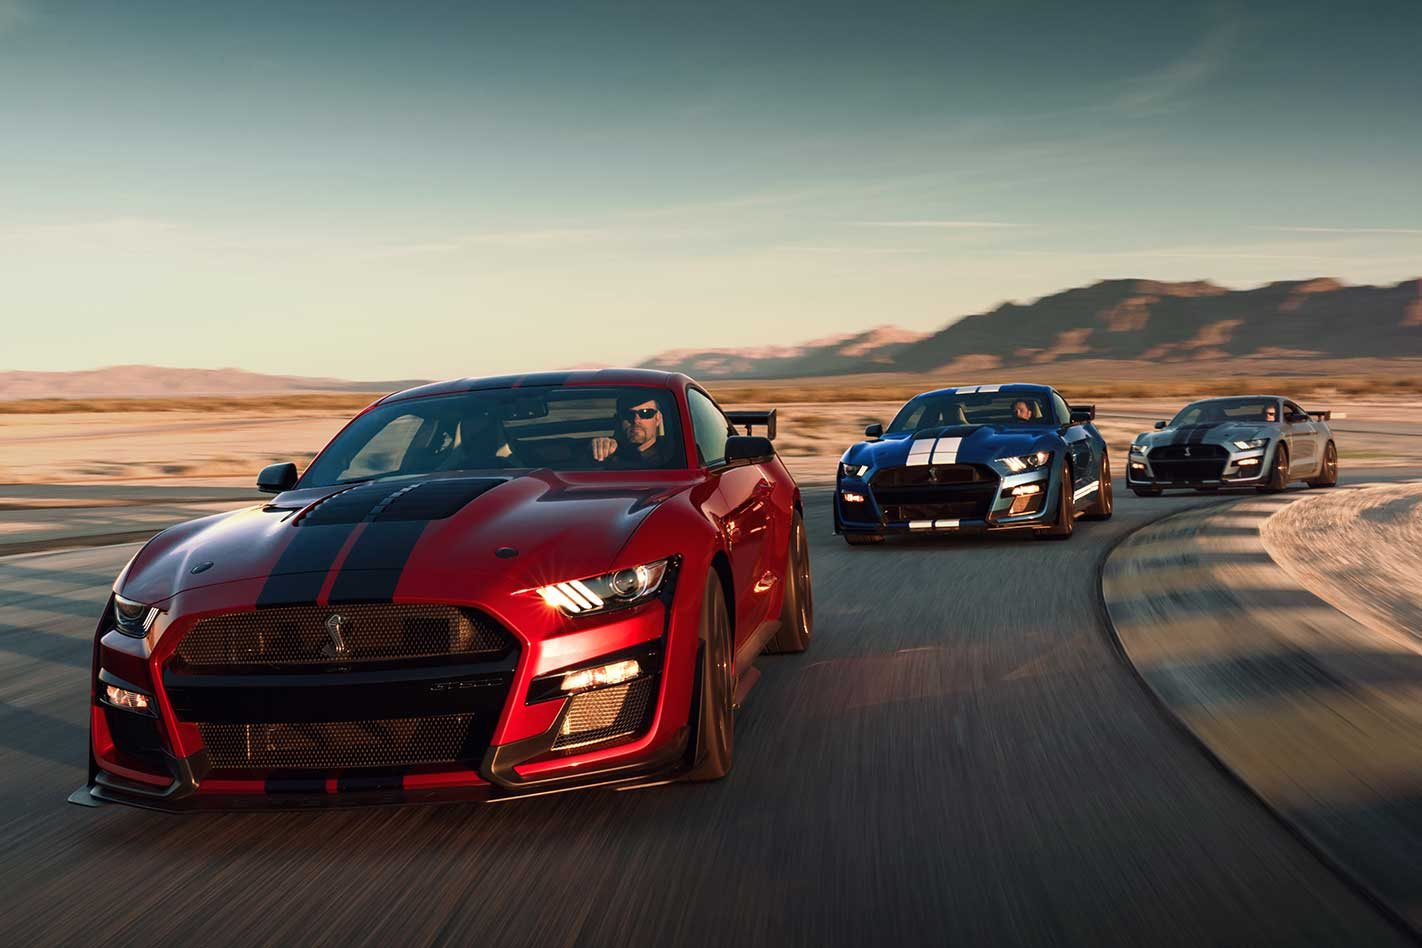 2019 detroit auto show 2020 ford mustang shelby gt500 revealed